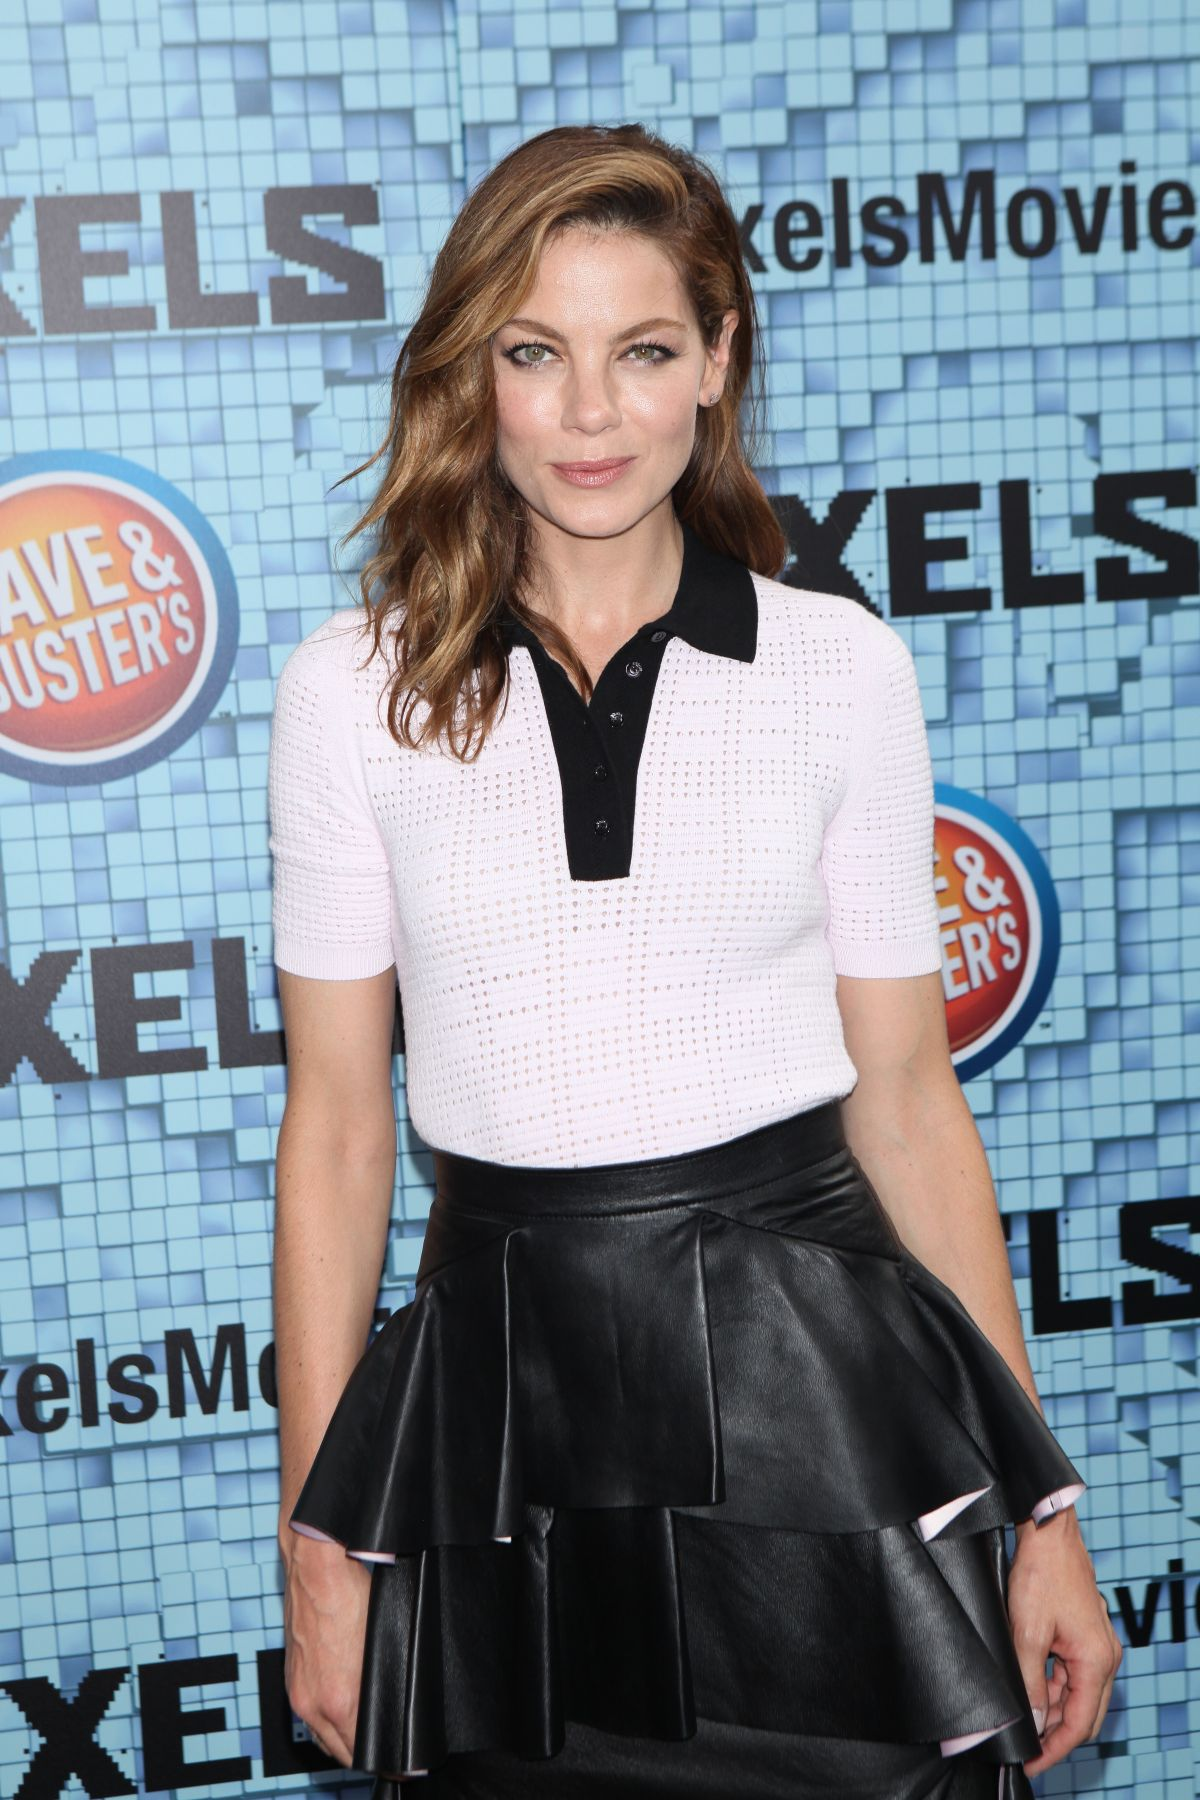 MICHELLE MONAGHAN at Pixels Premiere in New York